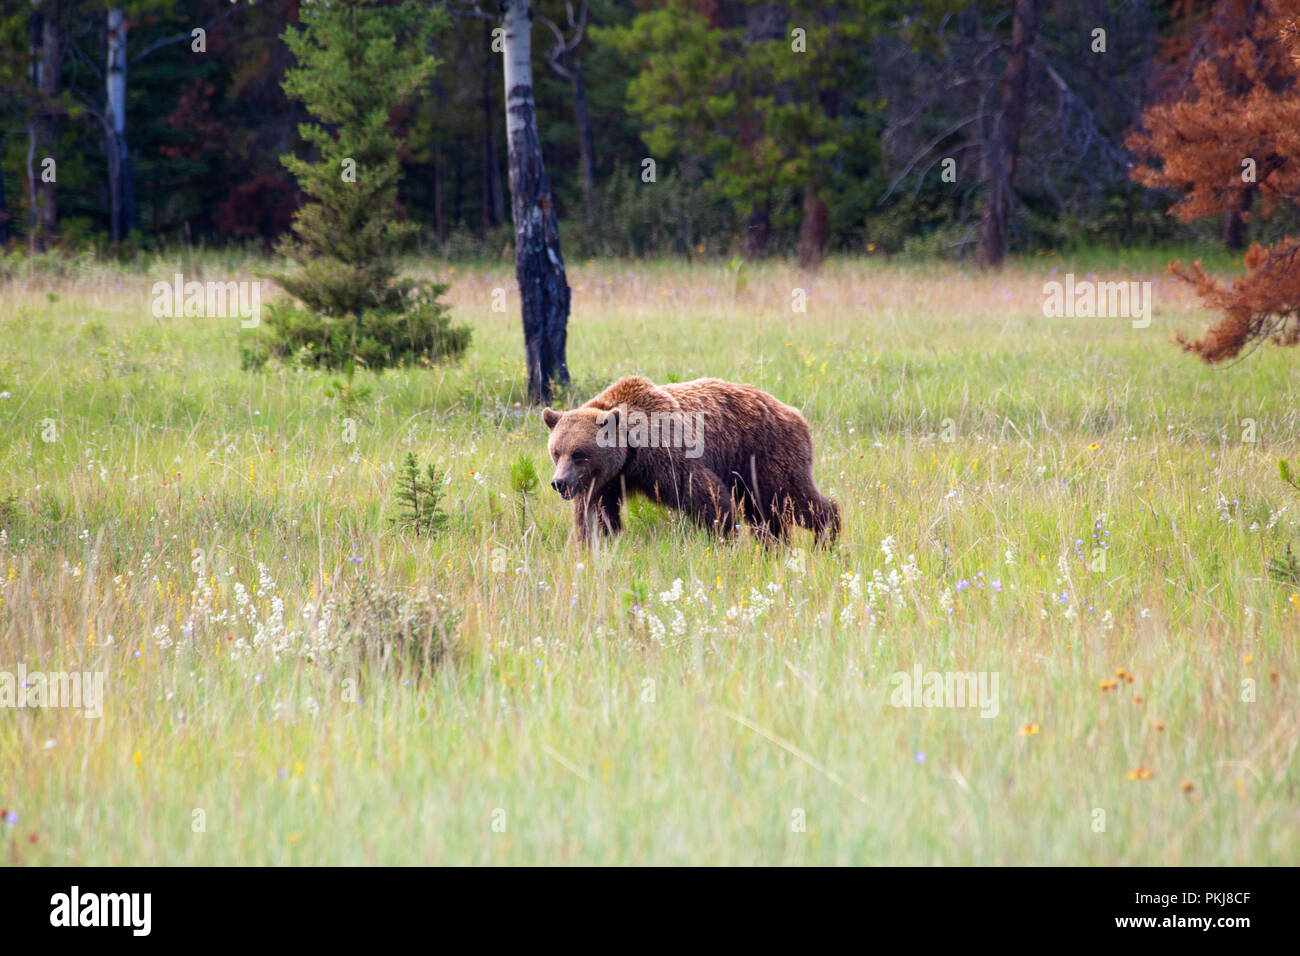 Large adult grizzly bear (Ursus arctos) walking in a meadow in Jasper National Park. Alberta, Canada. - Stock Image